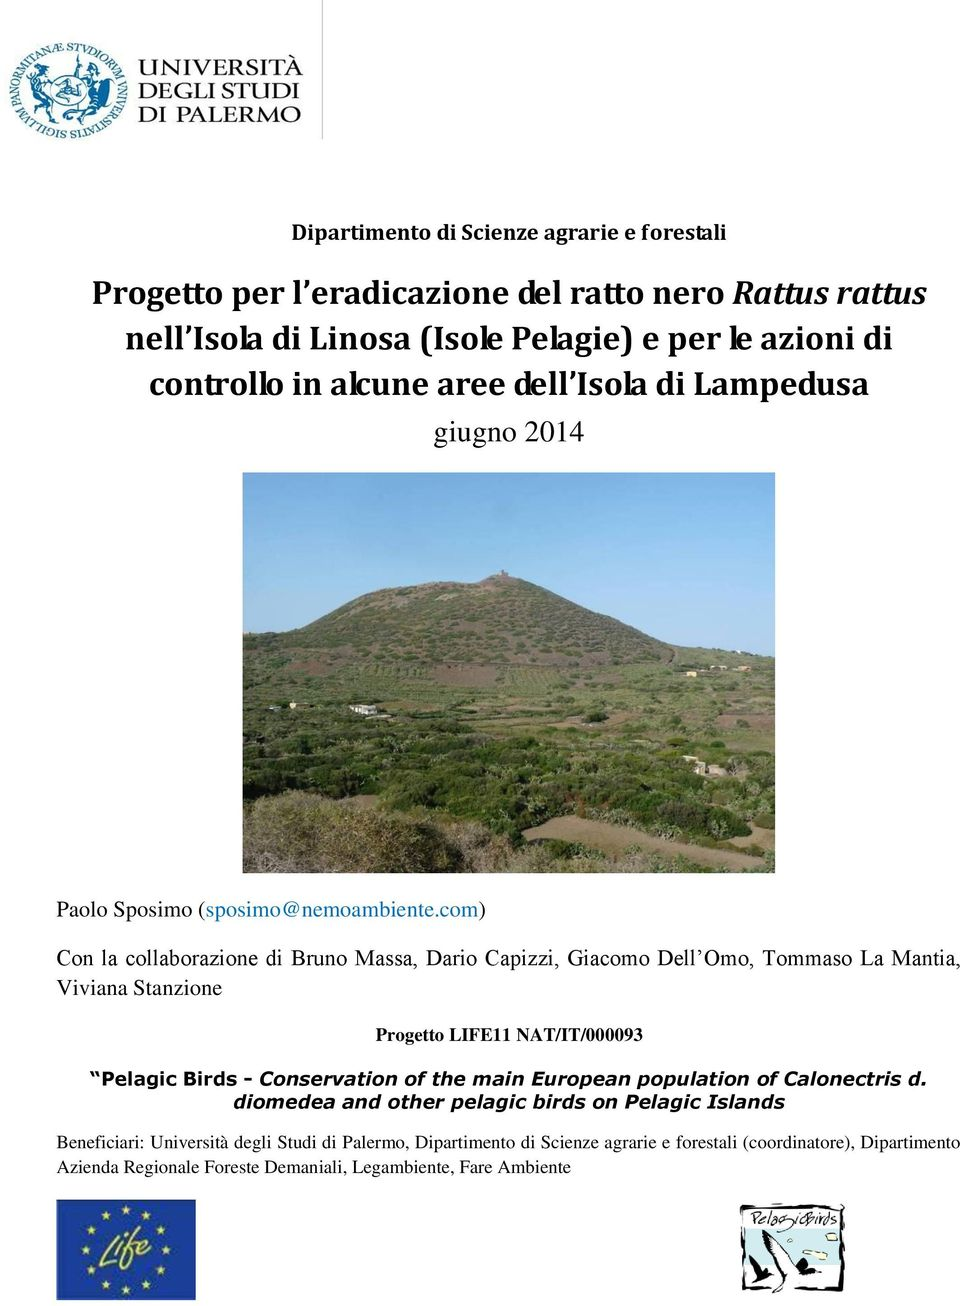 com) Con la collaborazione di Bruno Massa, Dario Capizzi, Giacomo Dell Omo, Tommaso La Mantia, Viviana Stanzione Progetto LIFE11 NAT/IT/000093 Pelagic Birds - Conservation of the